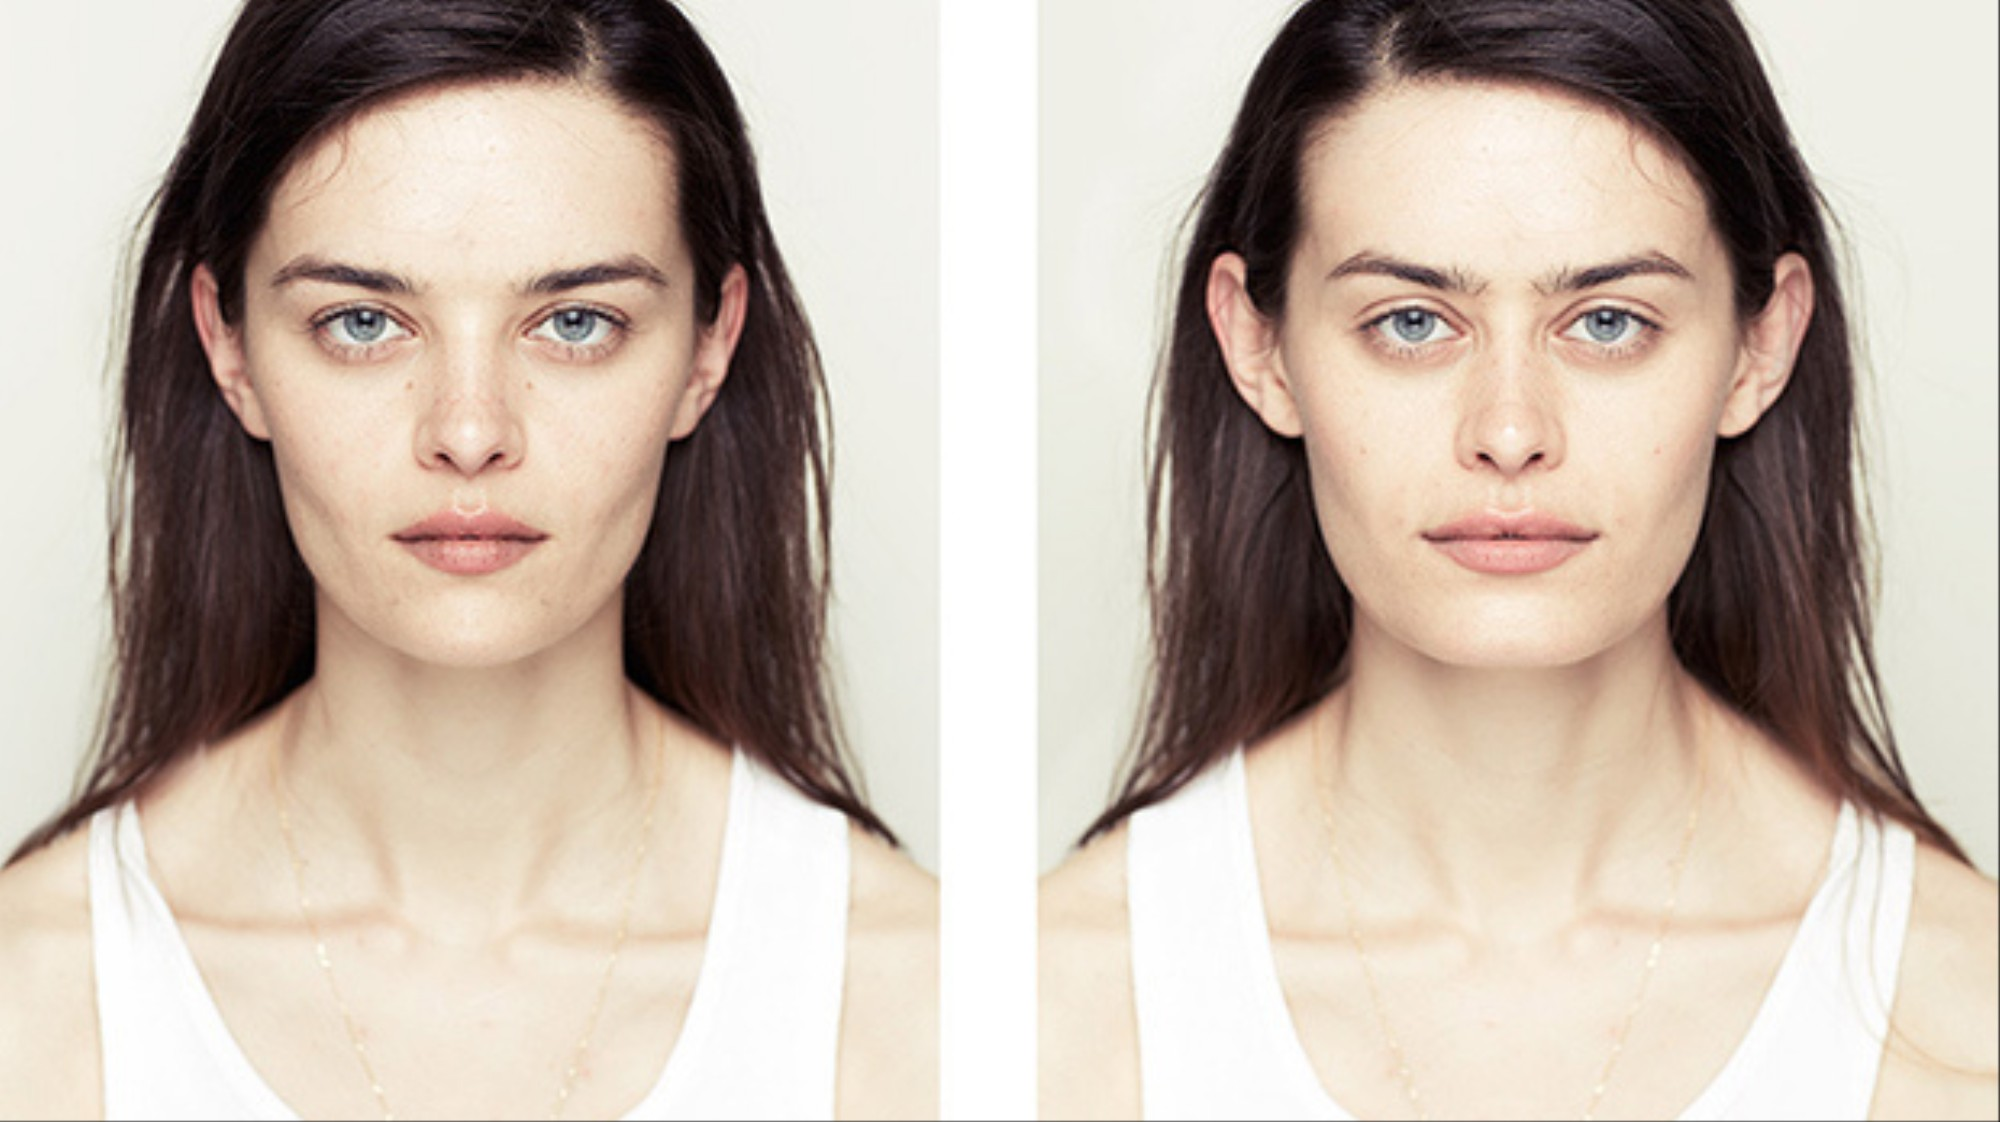 Photo Series Constructs Symmetrical Faces To Test